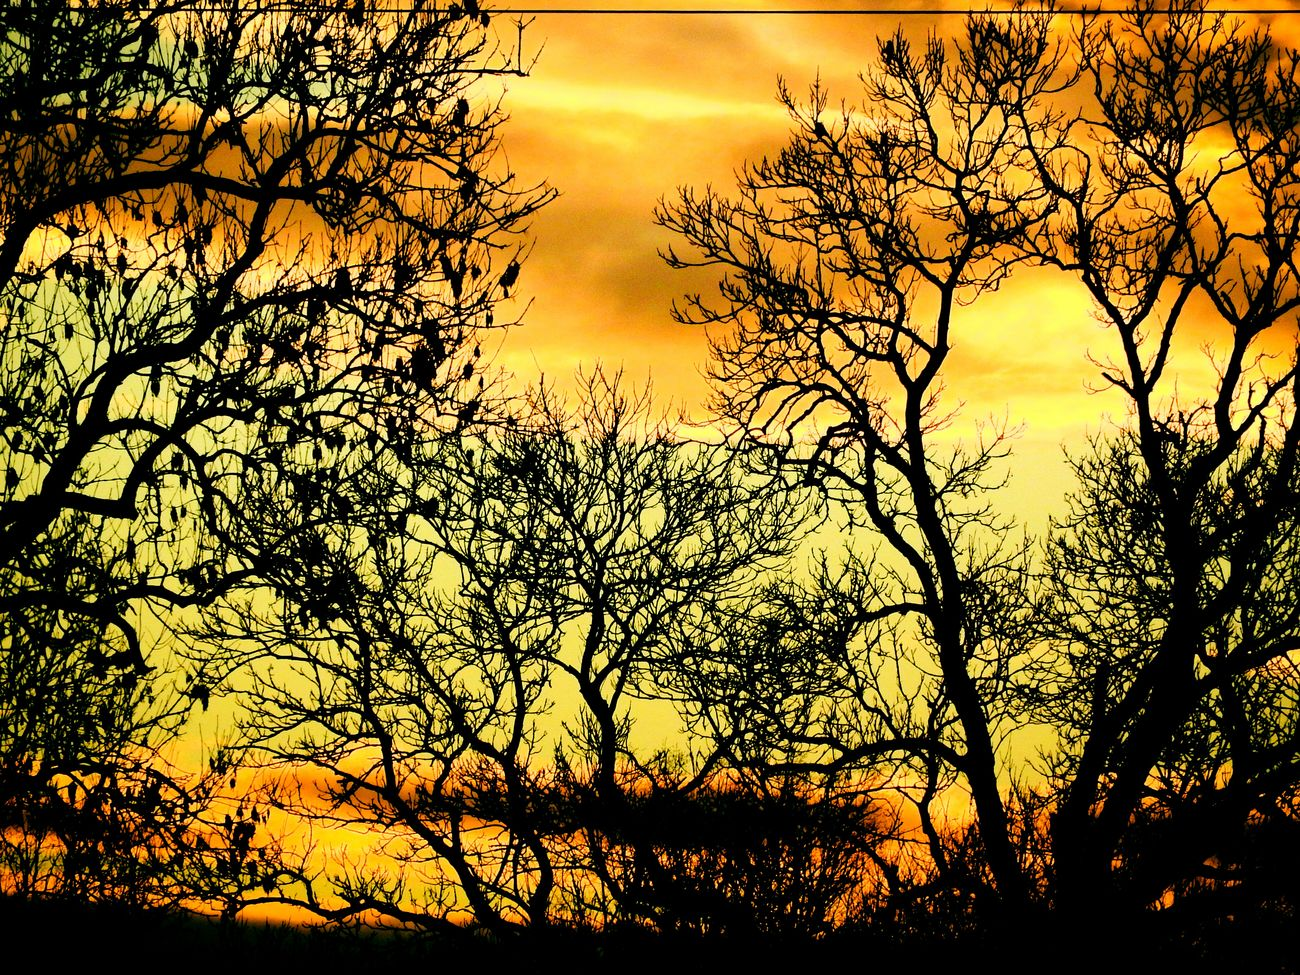 EyeEm Nature Lover Sunset✨trees✨ Sunsetlovers Sunset Silhouette Bare Tree Tranquil Scene Branch Scenics Tranquility Beauty In Nature Tree Cloud - Sky Sky Orange Color Nature Idyllic Tree Trunk Majestic Dramatic Sky Outdoors Growth Cloud